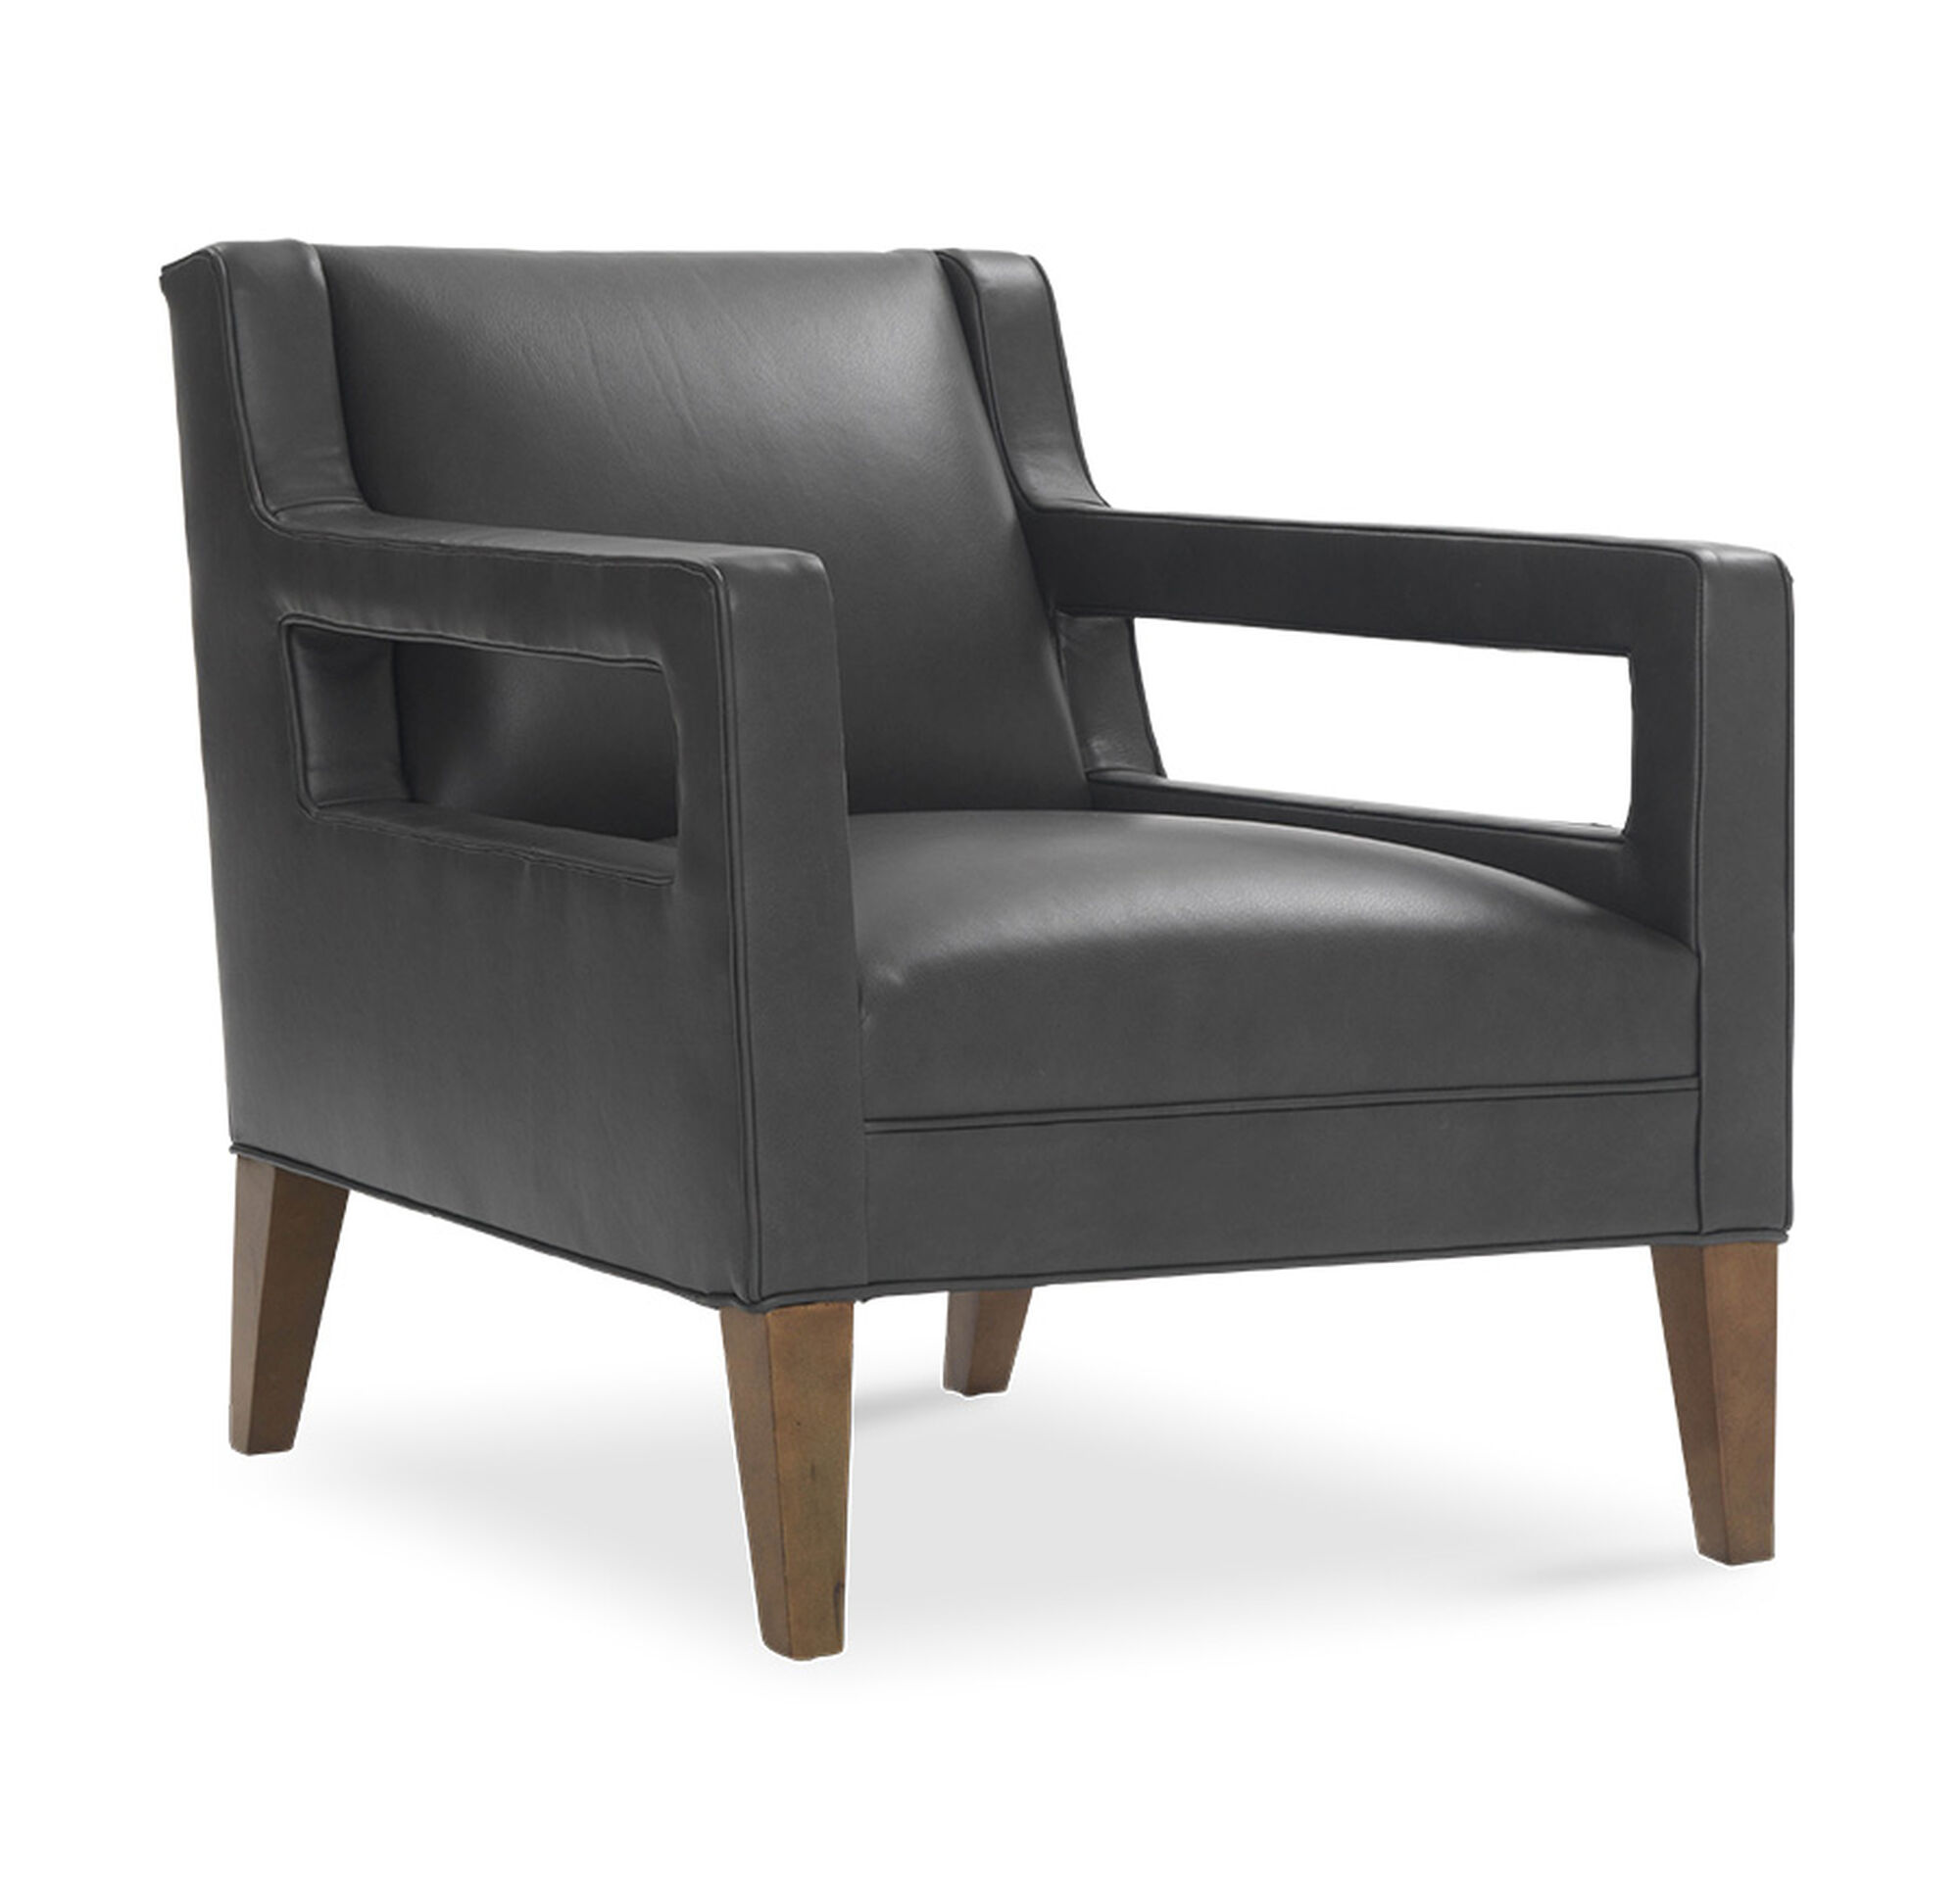 Outstanding Duke Leather Chair Gmtry Best Dining Table And Chair Ideas Images Gmtryco